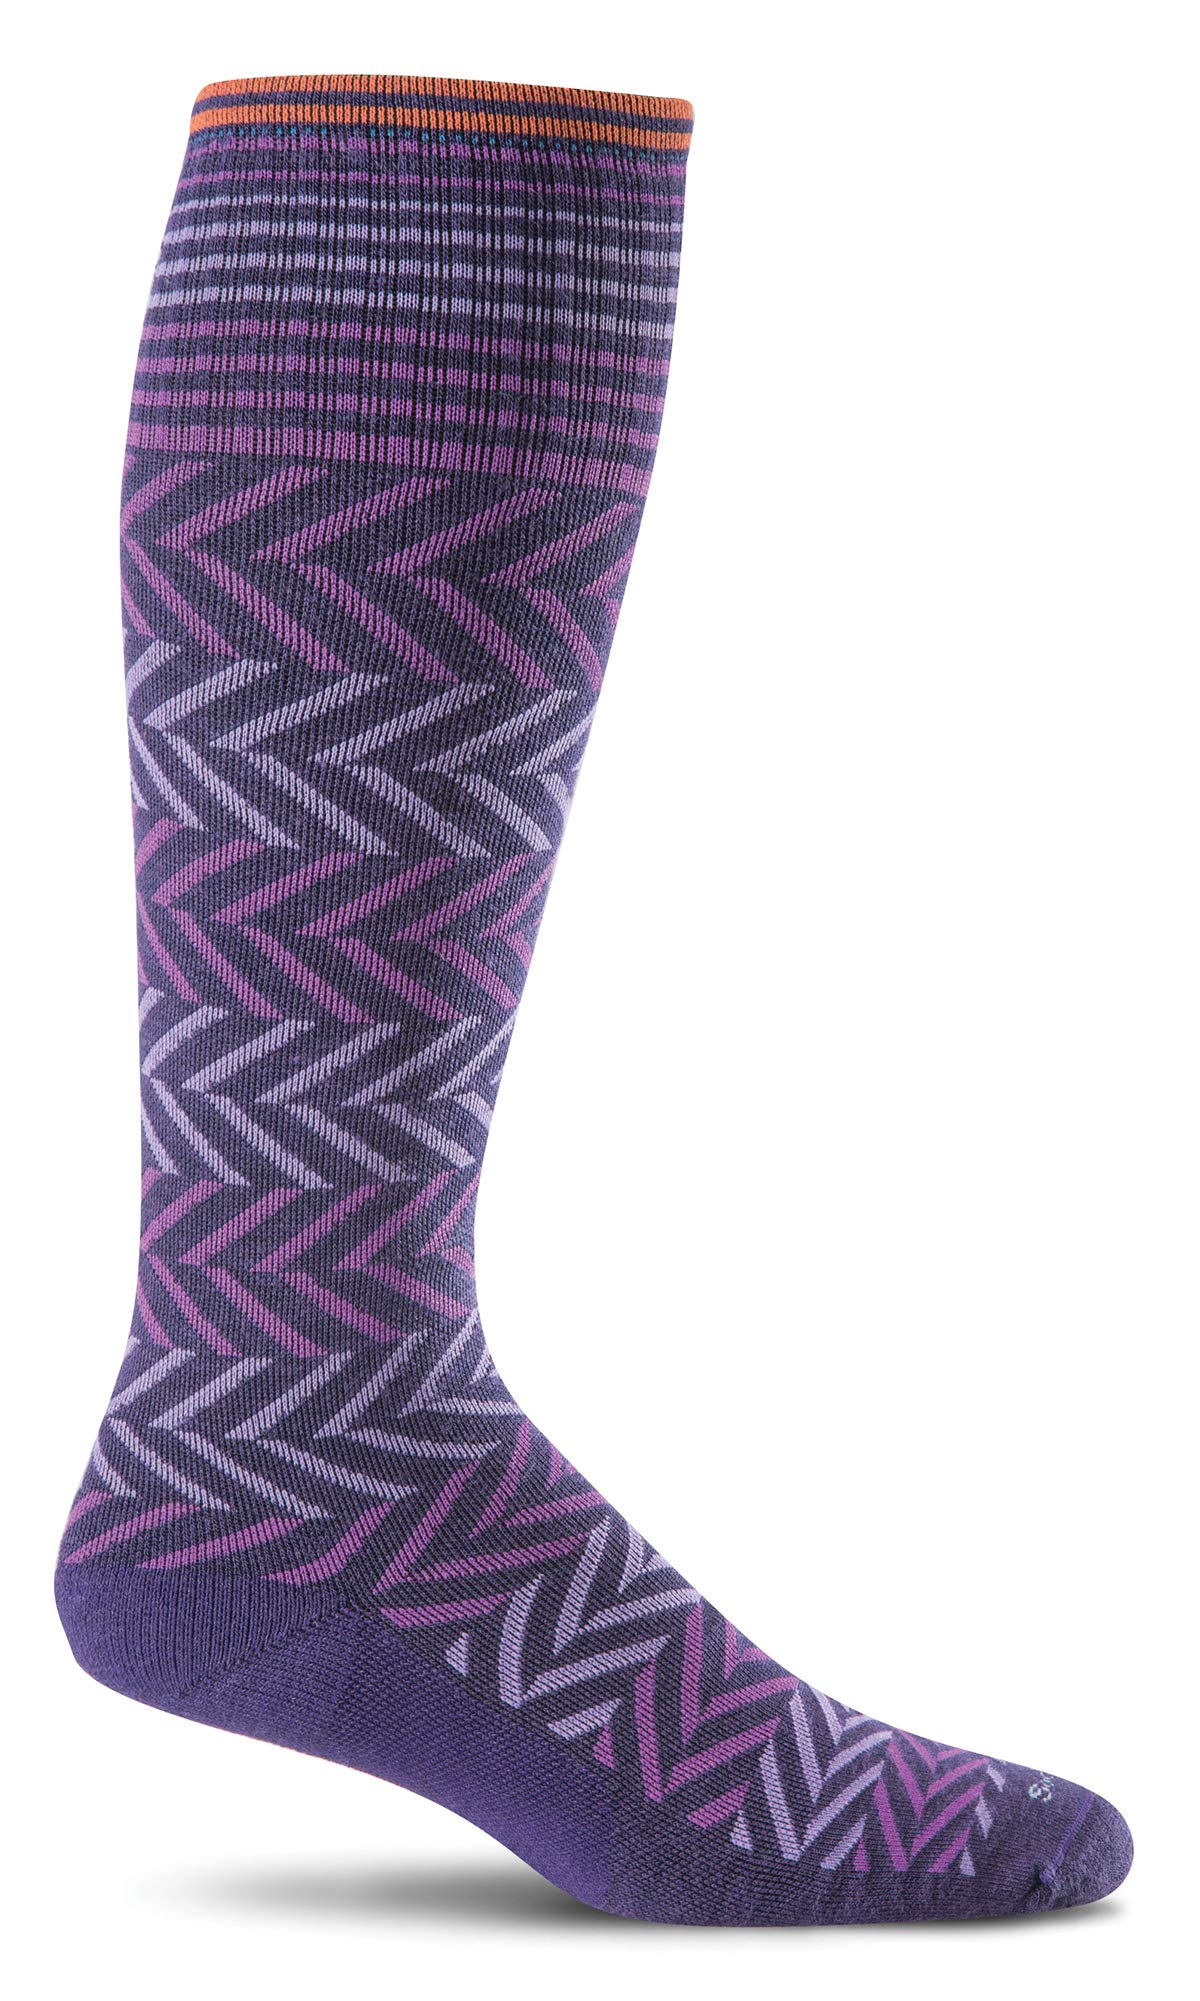 Sockwell Women's Chevron Graduated Compression Socks, Concorde, Medium/Large by Sockwell